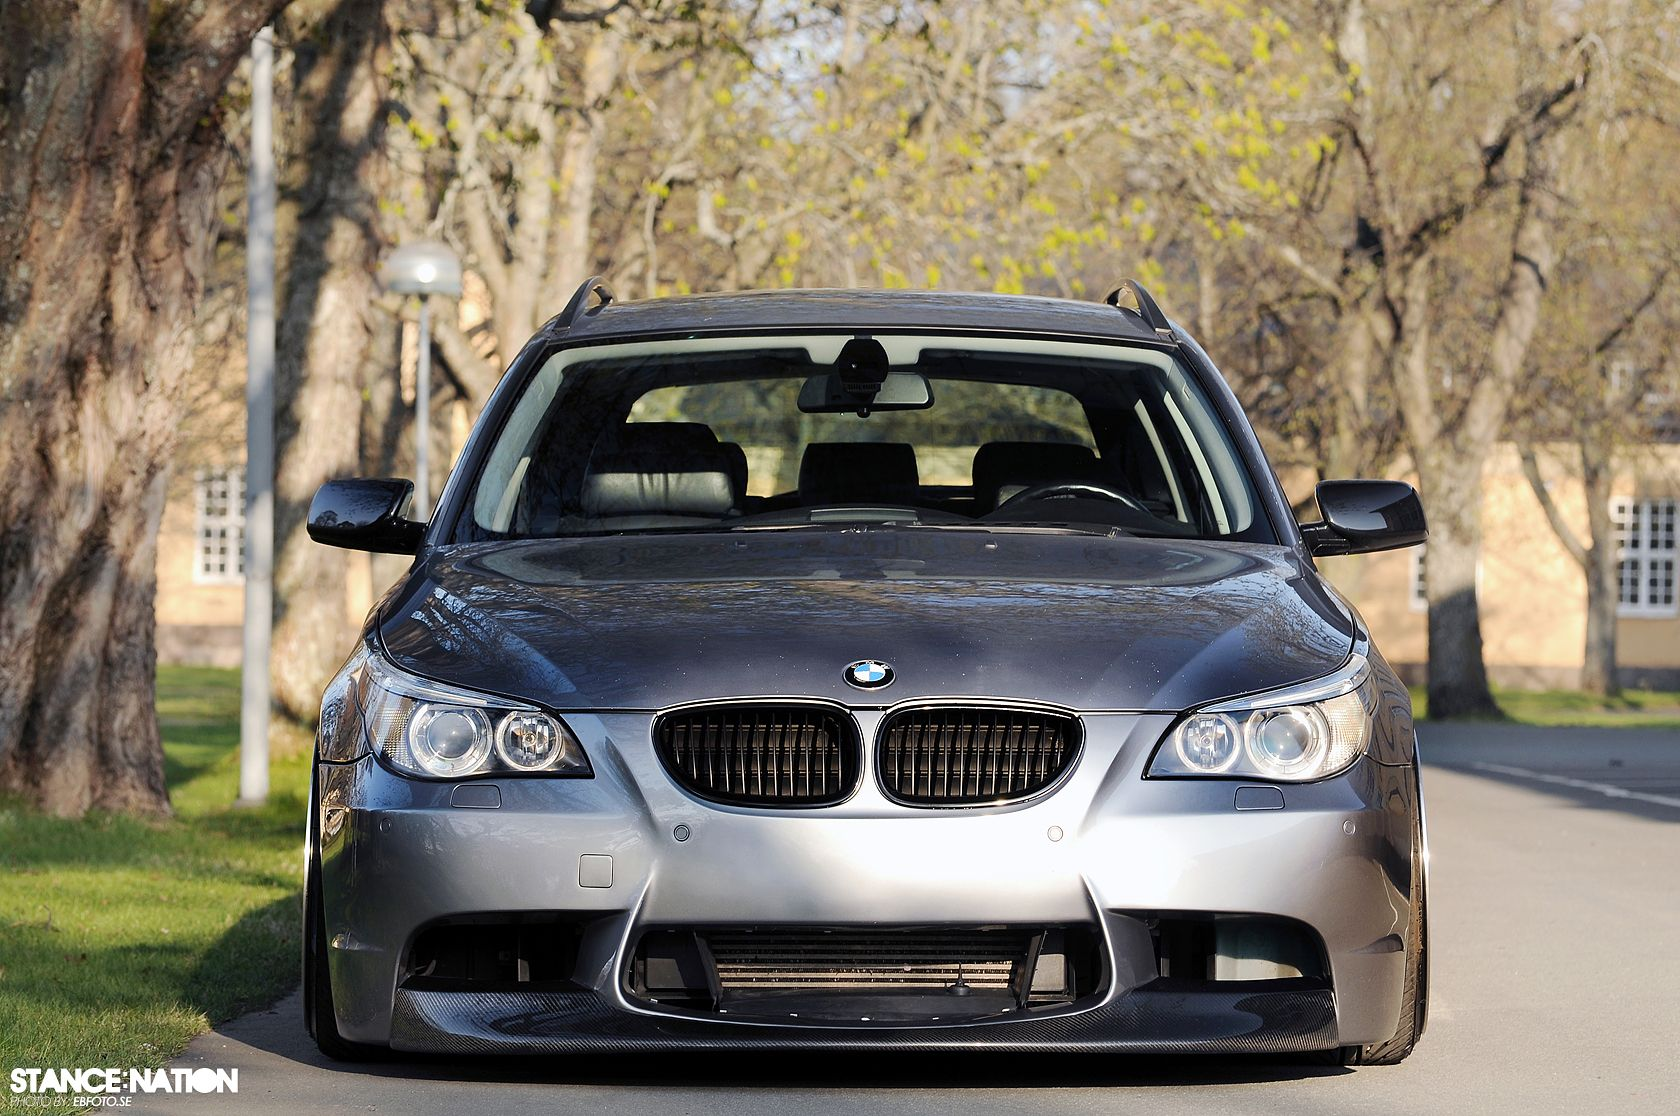 stanced fitted bmw 5 series e61 8 cars pinterest bmw cars and auto wheels. Black Bedroom Furniture Sets. Home Design Ideas